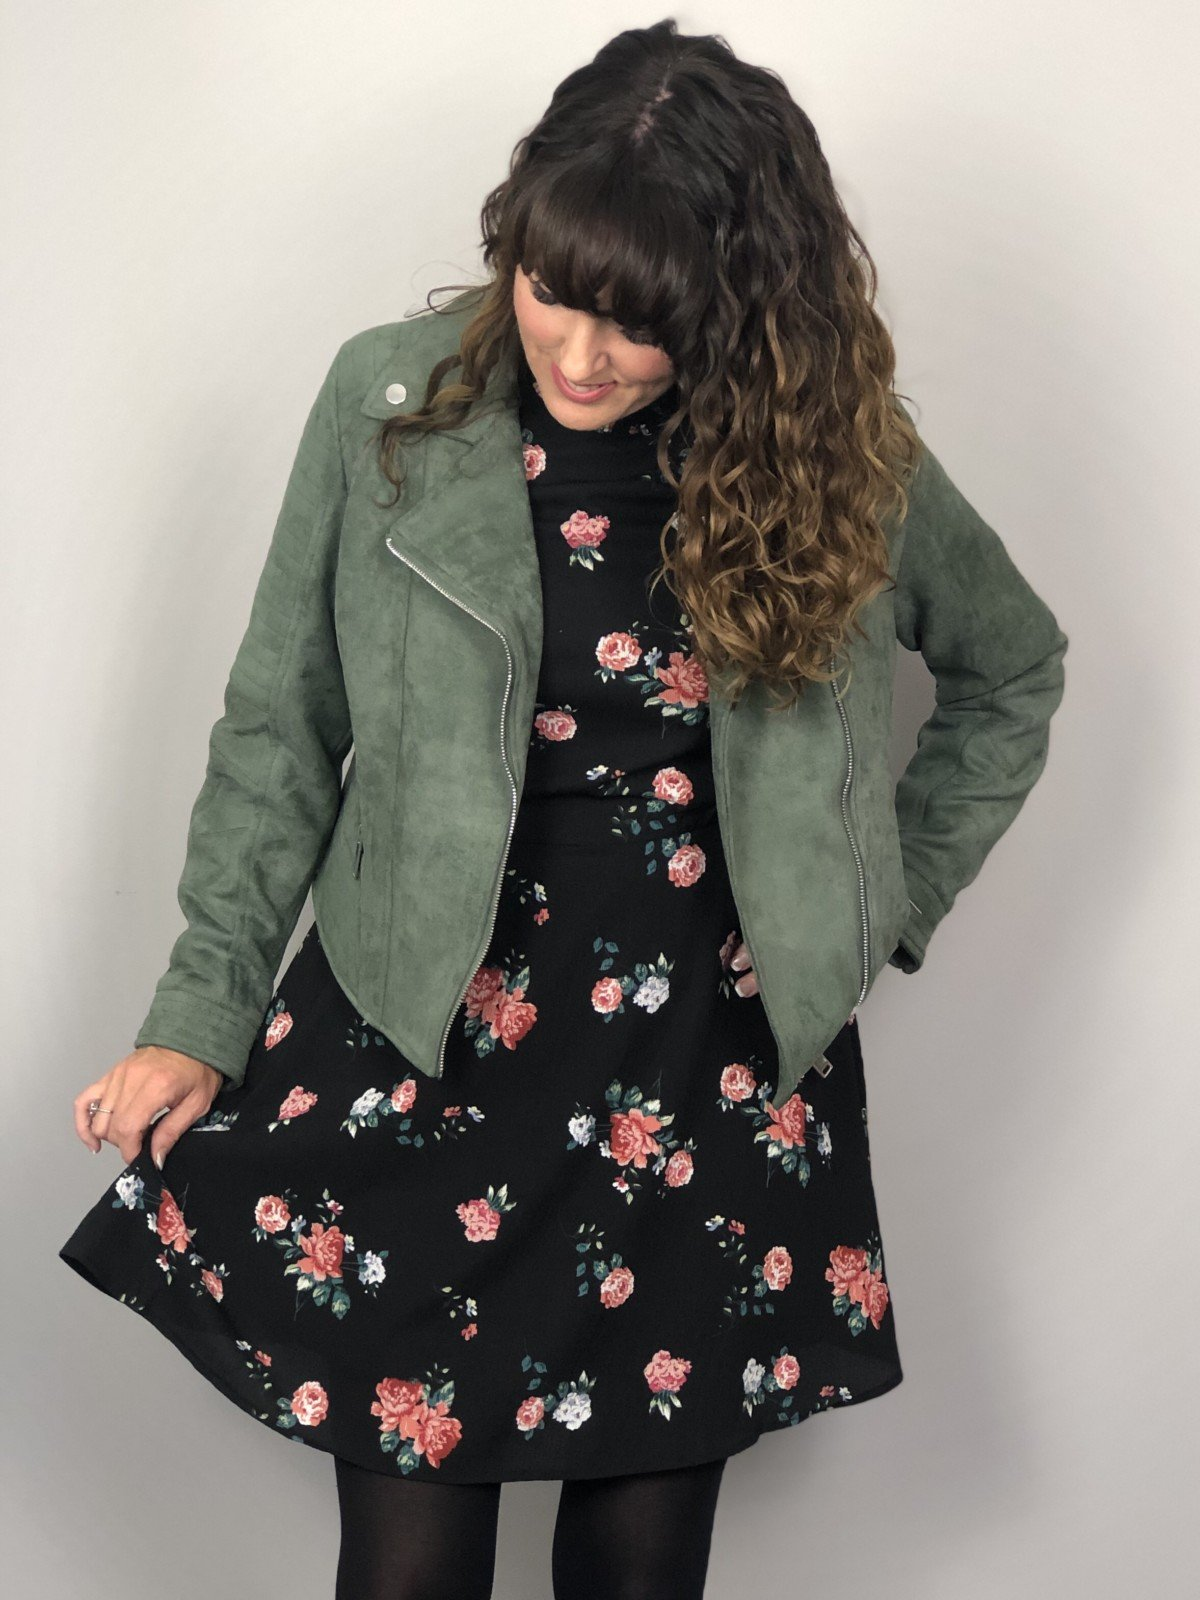 Floral tea dress and Suede khaki biker jacket